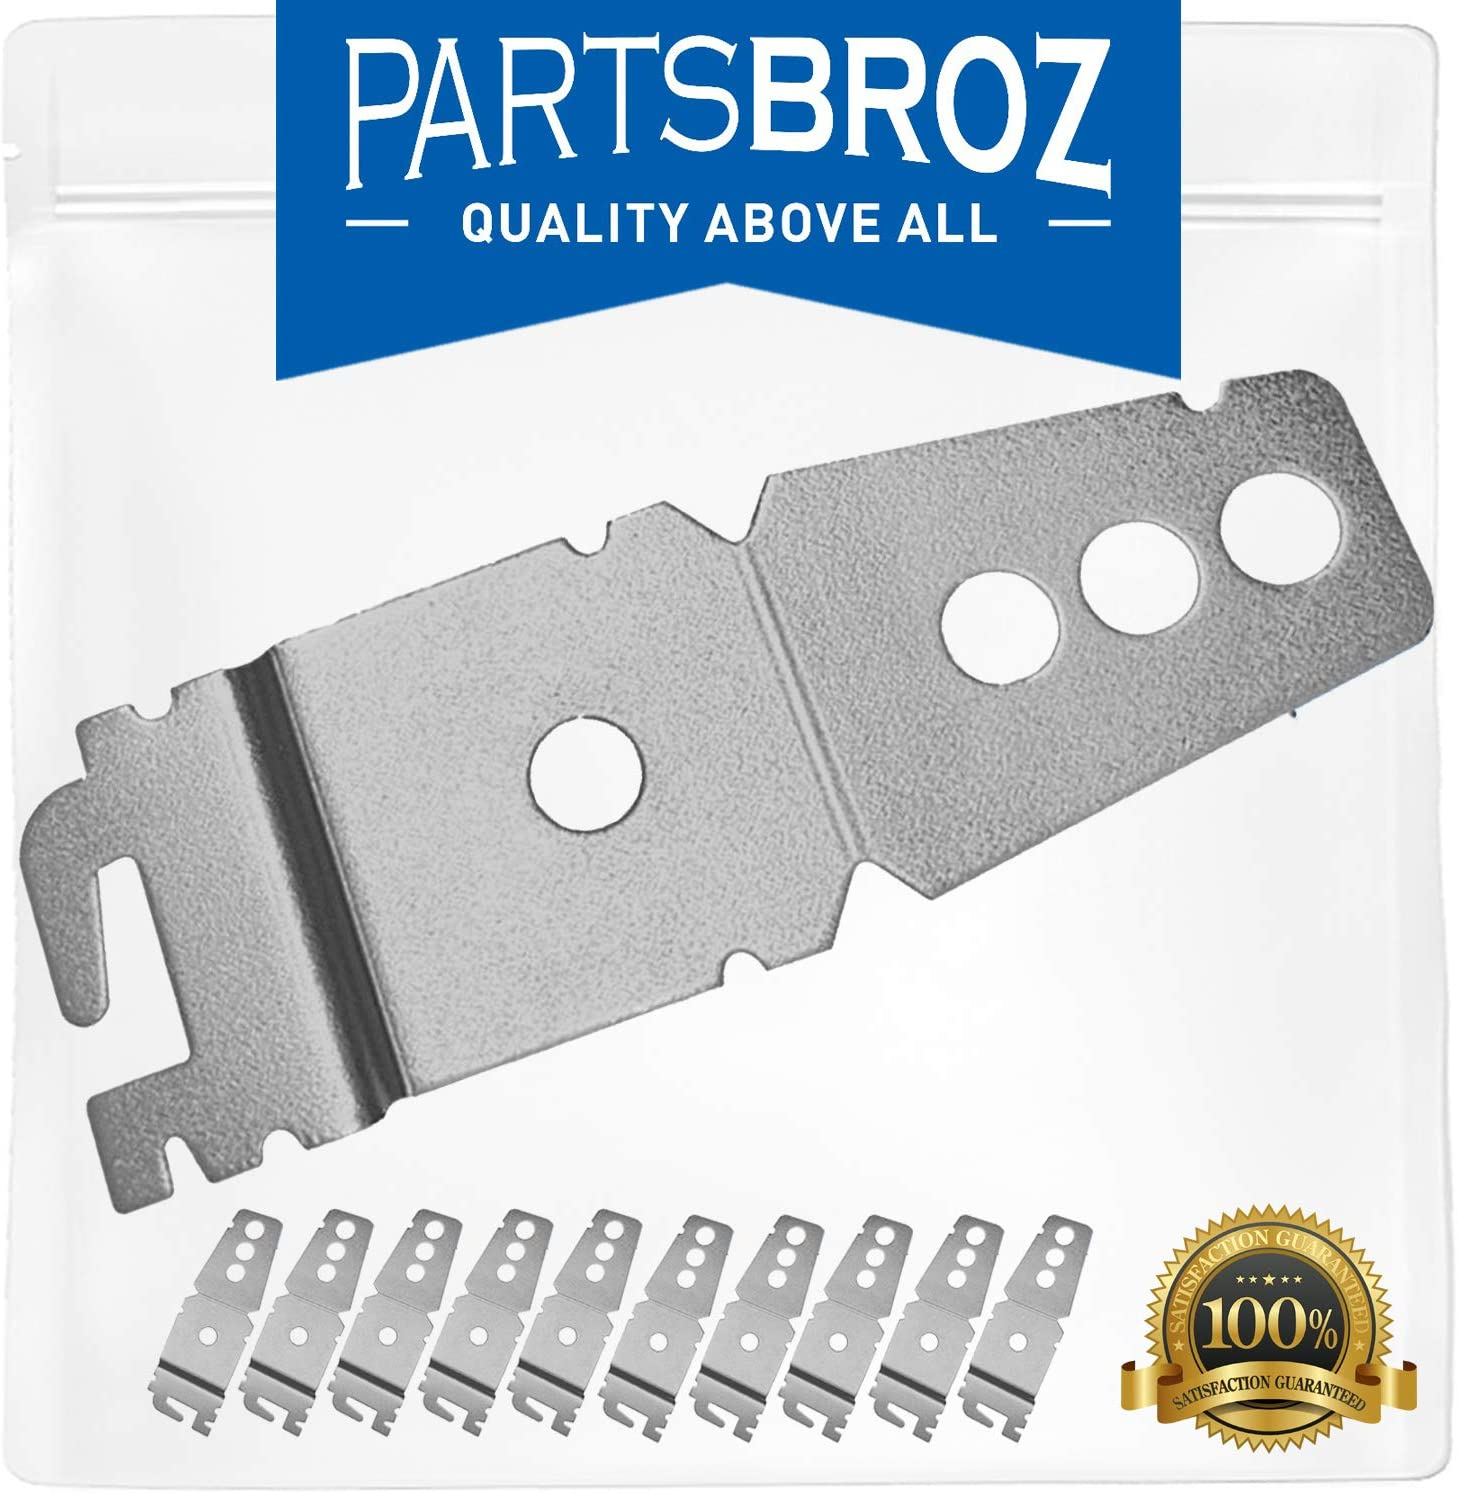 8269145 Mounting Bracket (10-Pack) by PartsBroz - Compatible with Whirlpool Dishwashers - Replaces AP6012289, WP8269145, 8269145, PS11745496, WP8269145VP